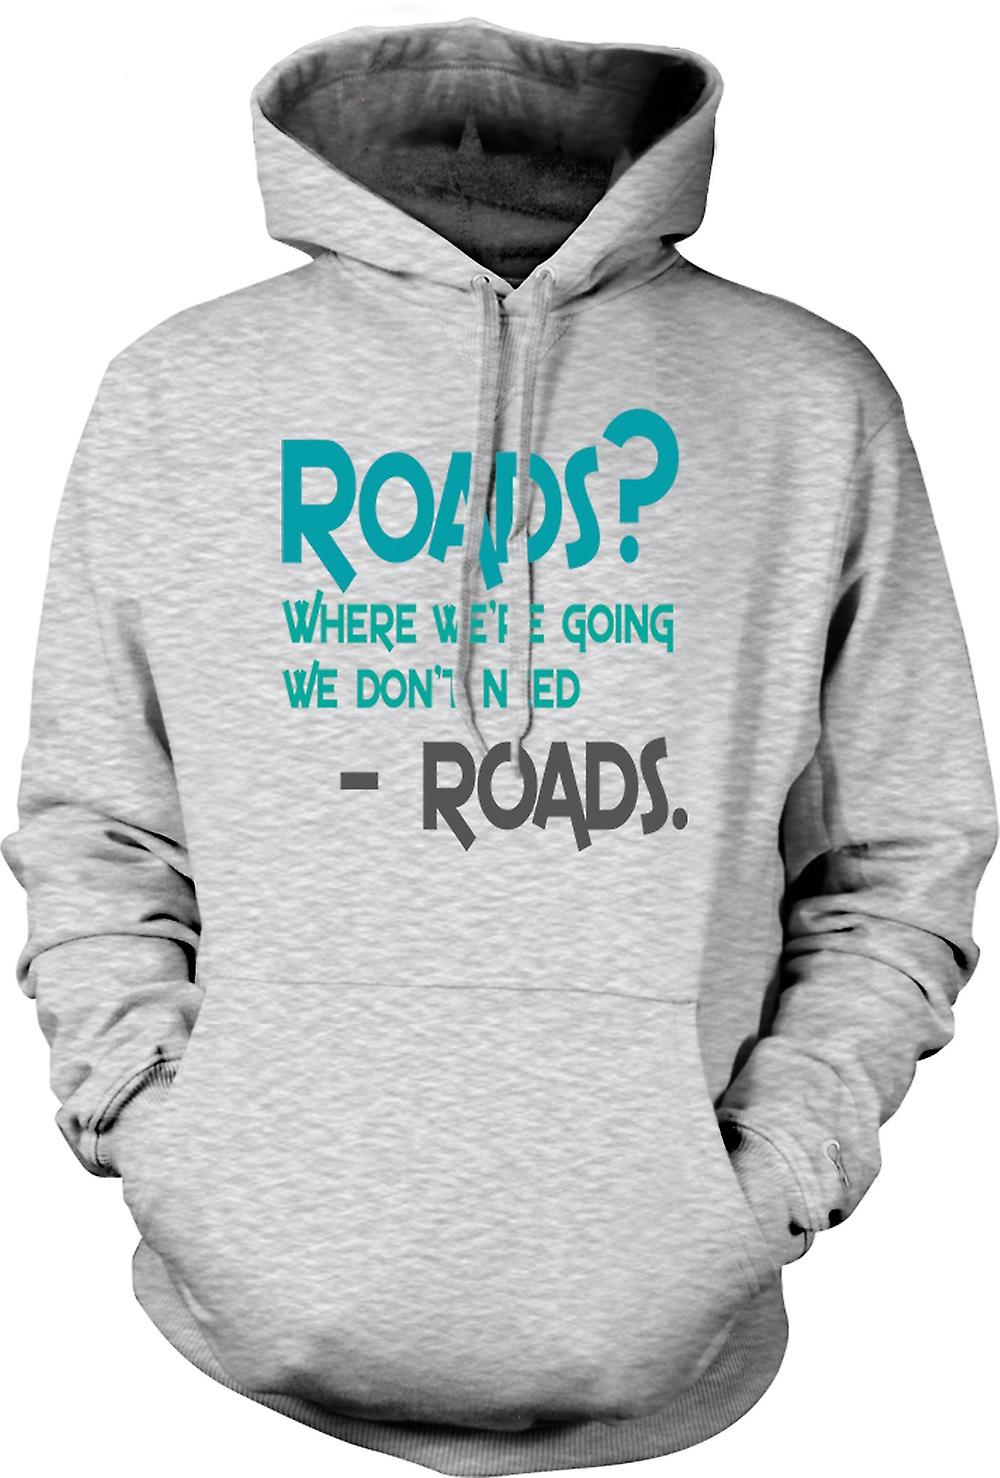 Mens Hoodie - Roads? Where We're Going We Don't Roads - Funny Quote